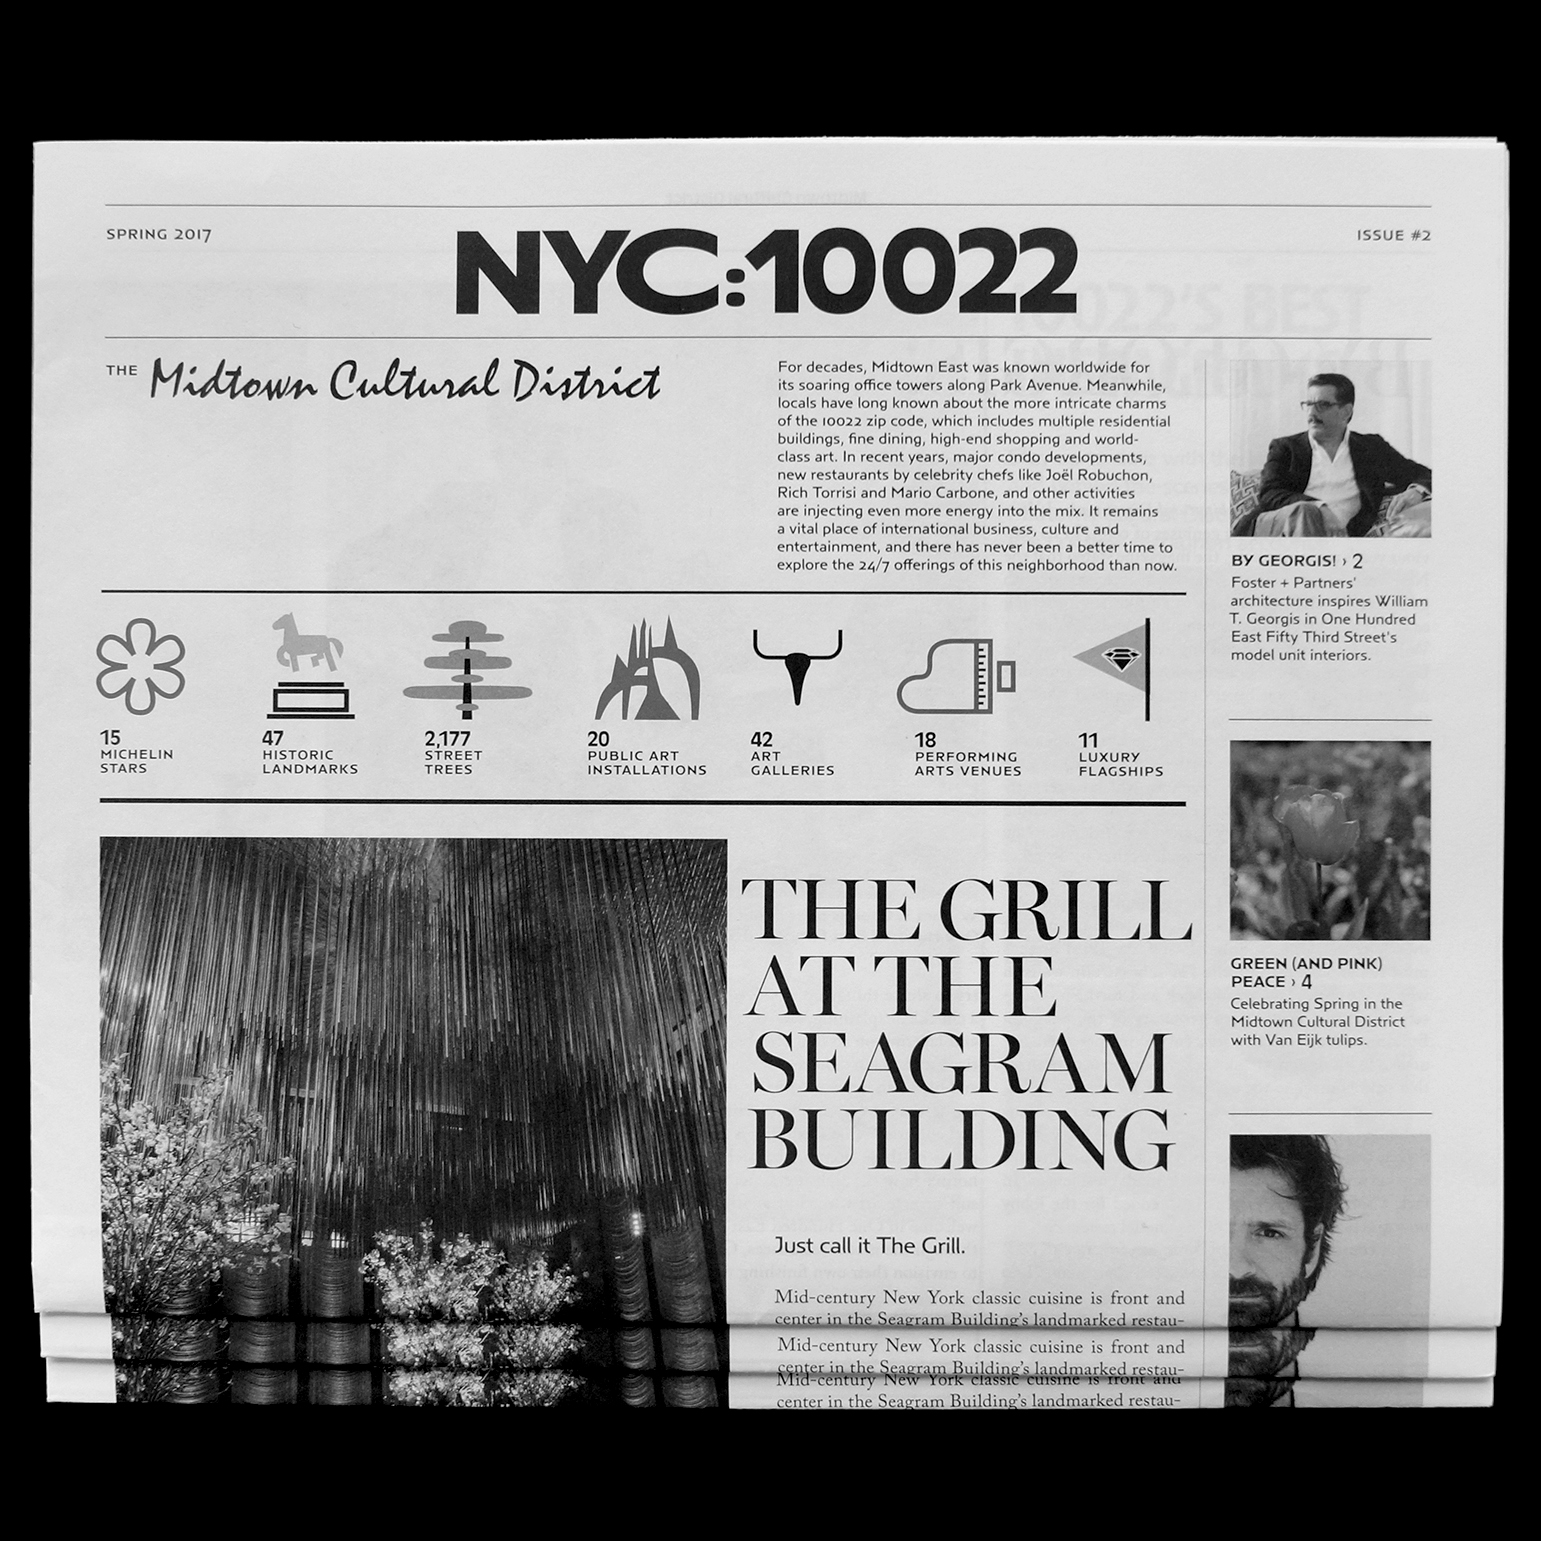 NYC:10022    The second edition of the NYC:10022 newsletter focuses on Spring must-sees and the latest news from the Midtown Cultural District.